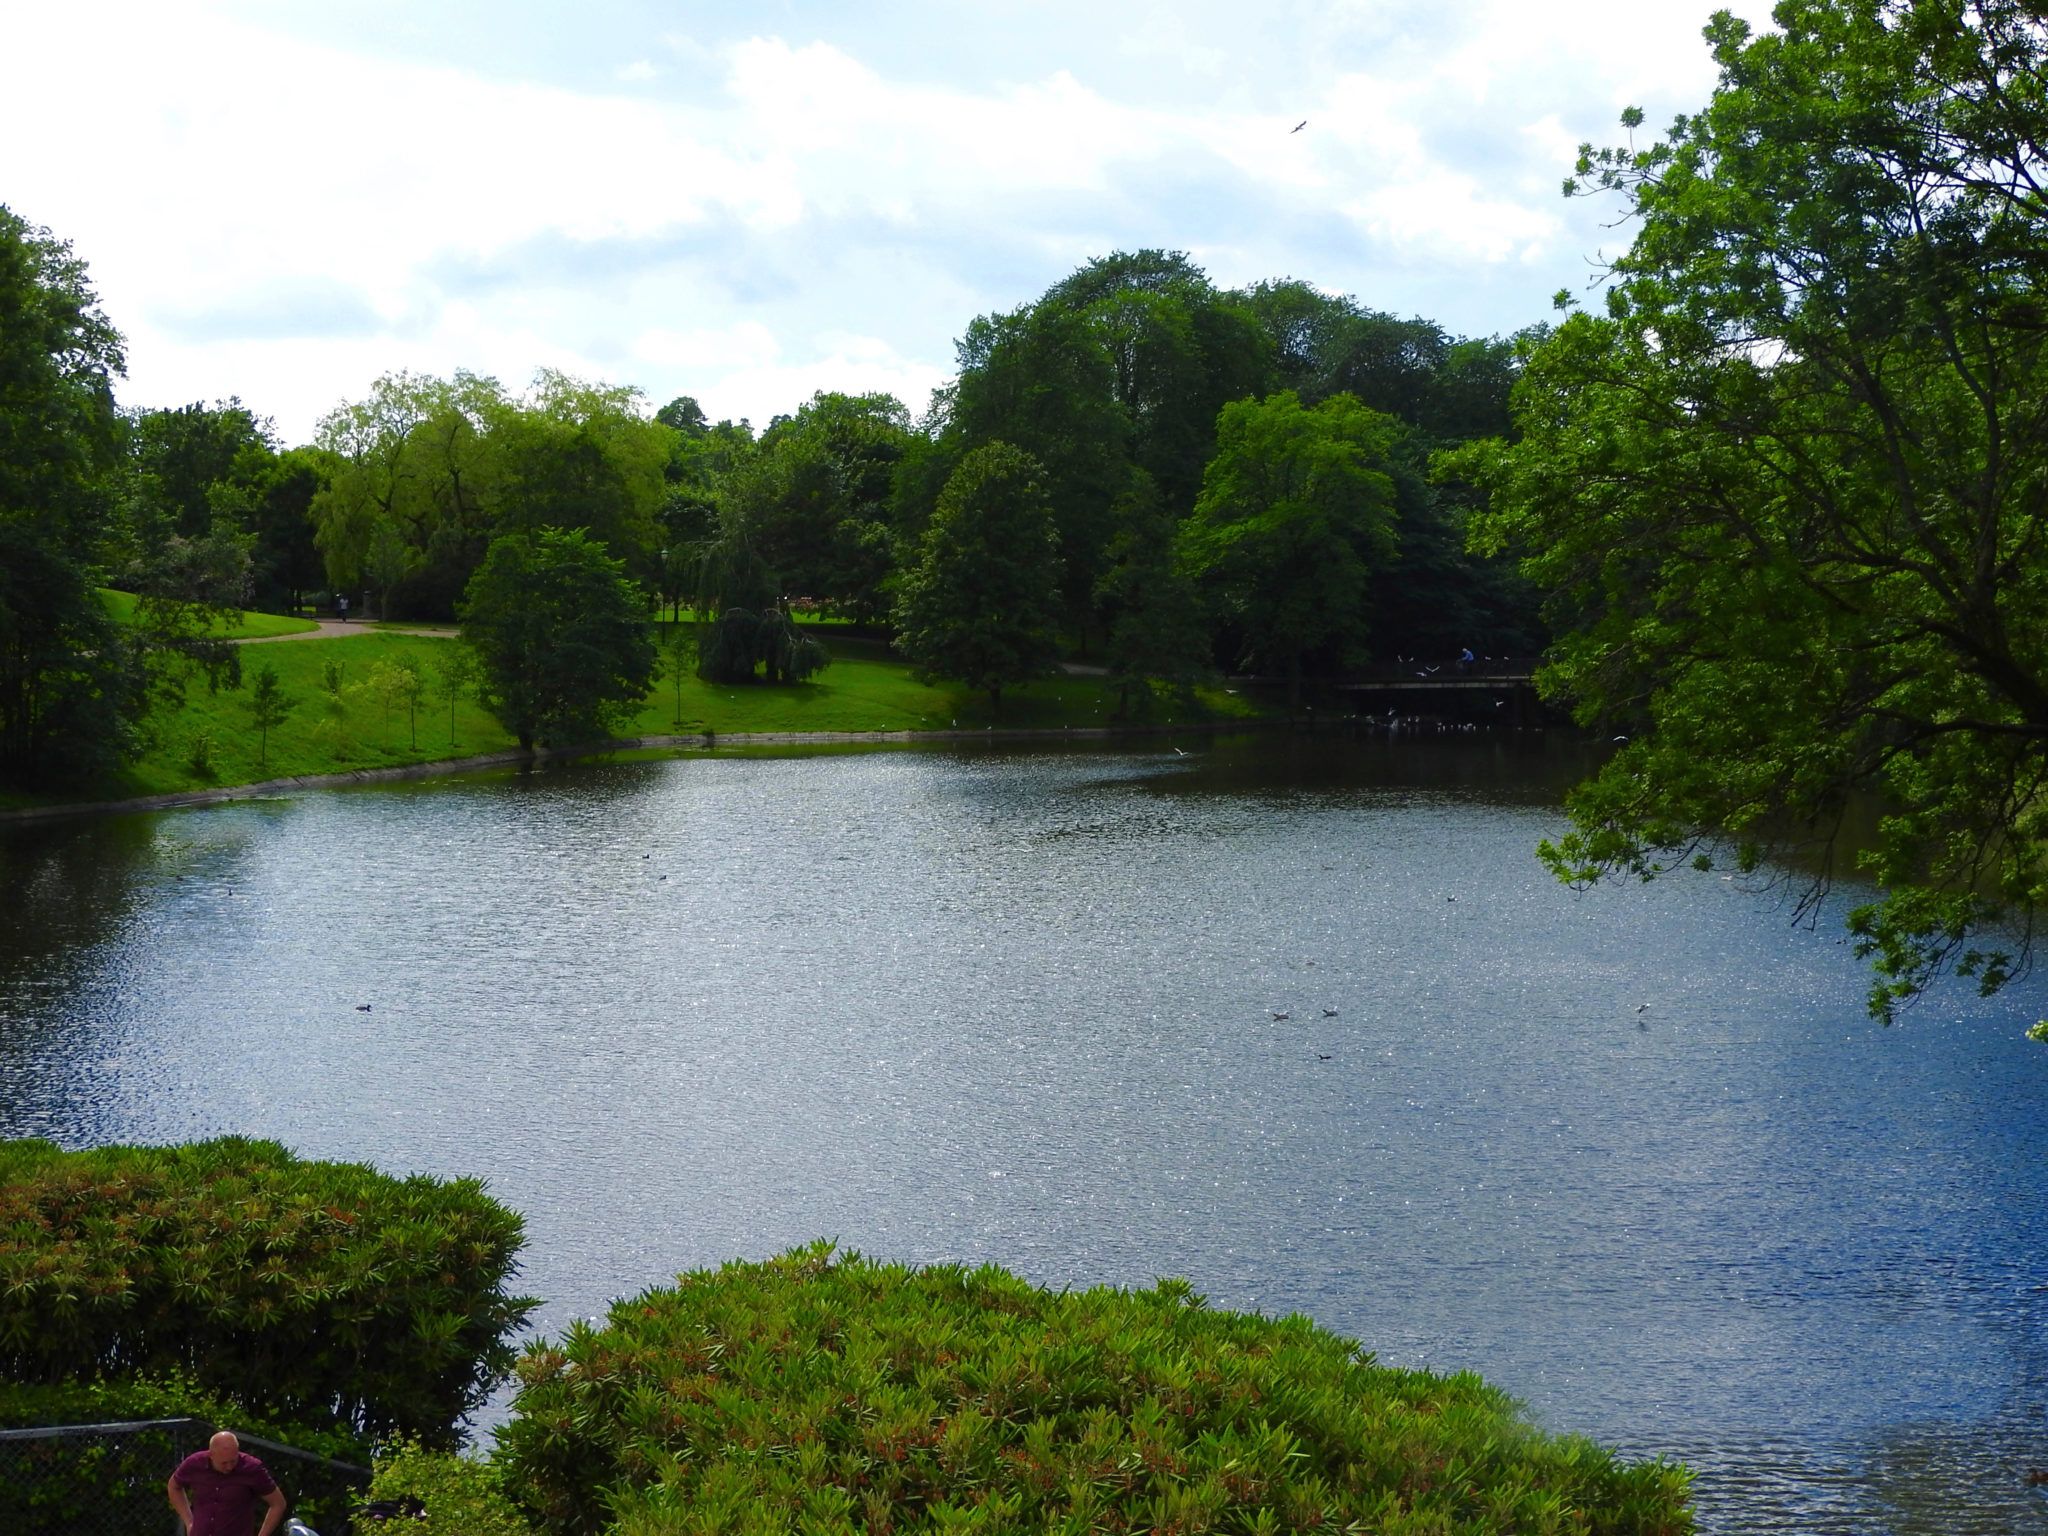 Pond surrounded by trees and other greenery Oslo Norway